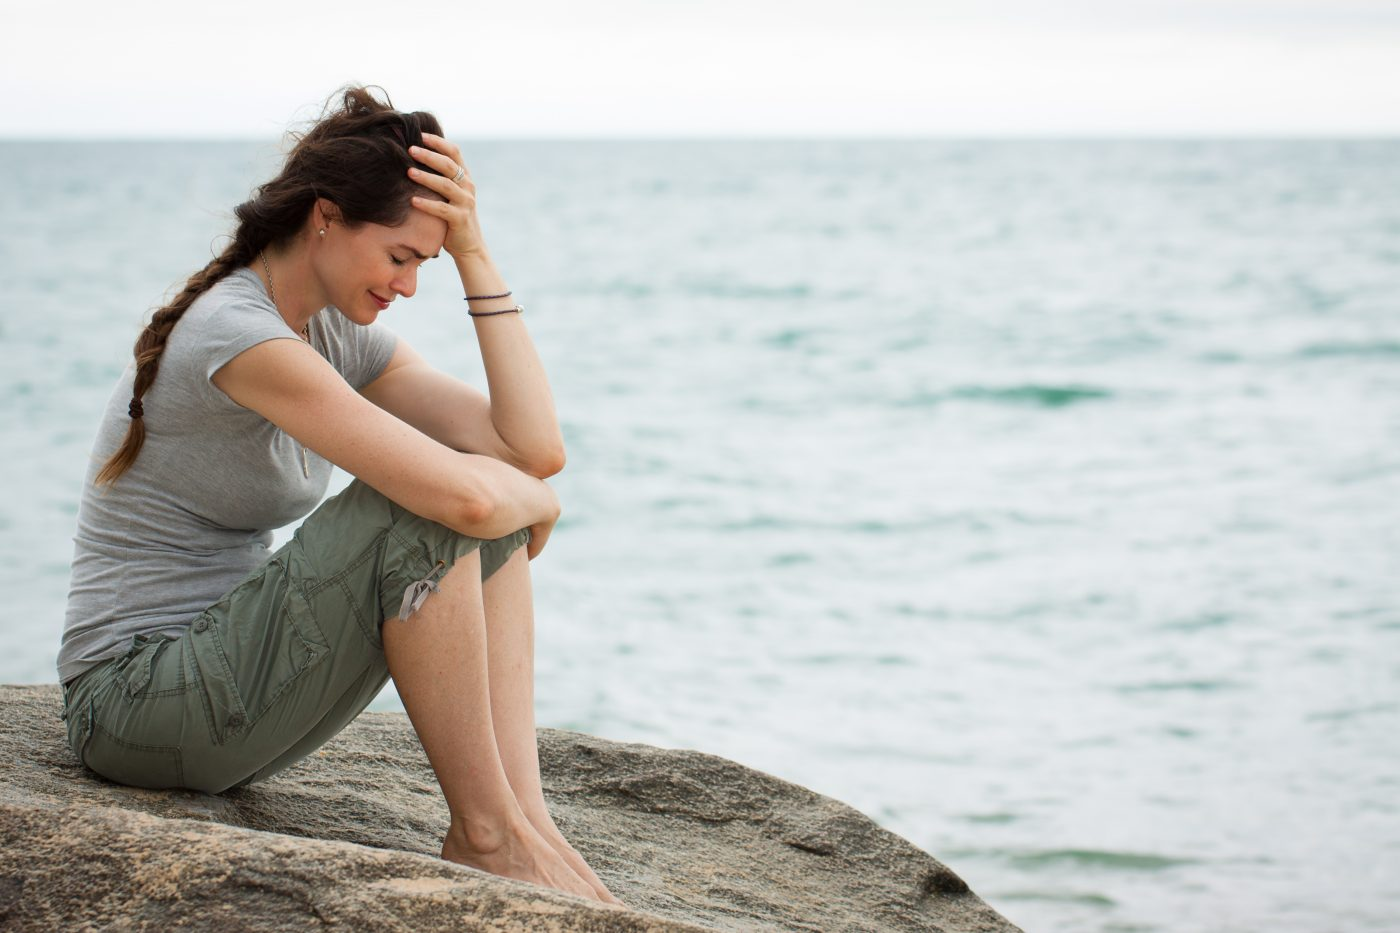 CETPH depression, anxiety